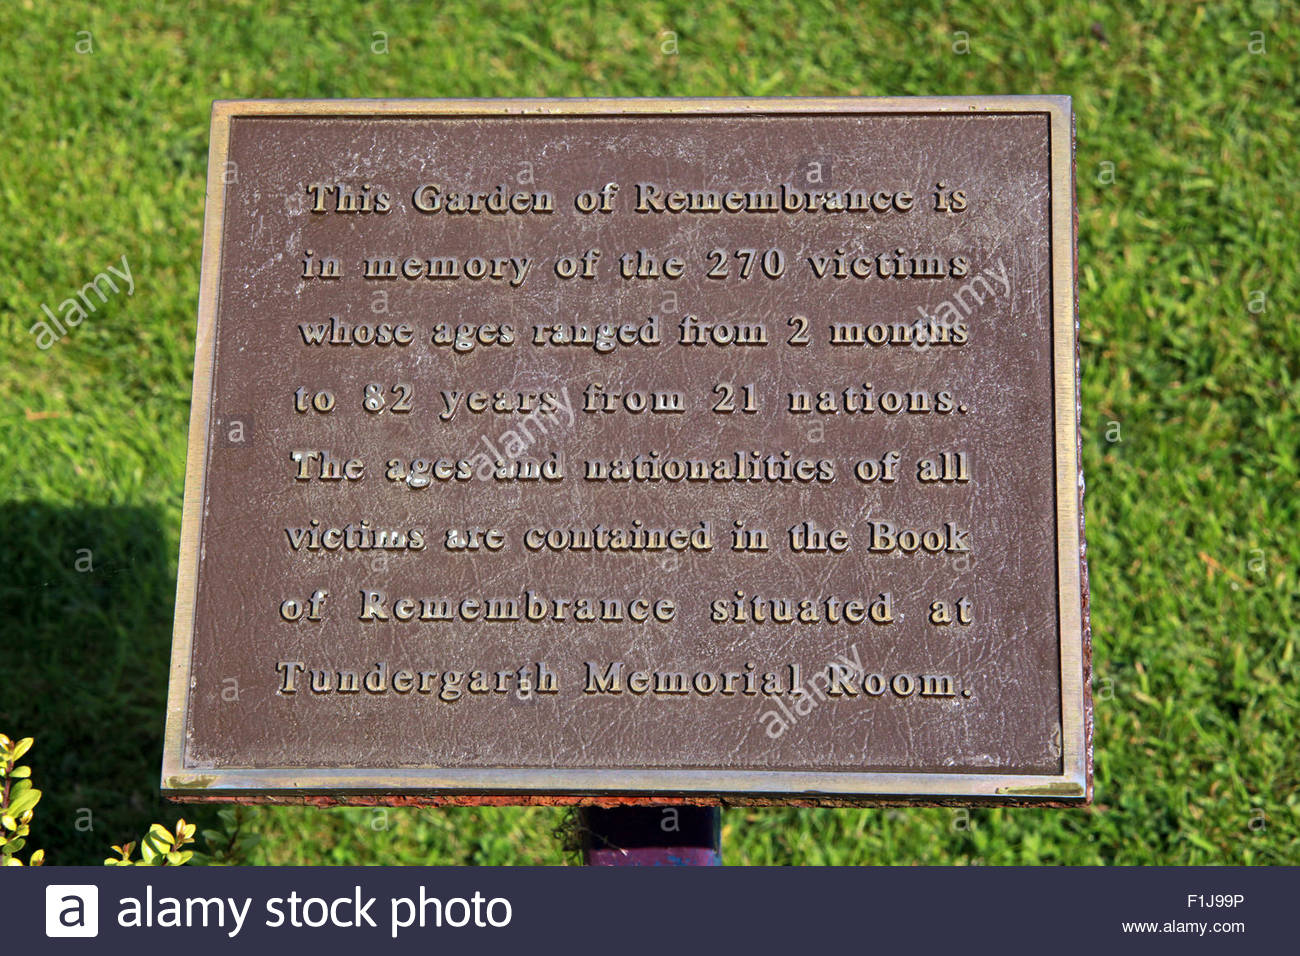 GoTonySmith,Lodge,Visitors,Centre,DLVC,Trust,Lockerbie,Memorial,Scotland,Victims,Pan,Am,PanAm,flight,103,bomb,bombing,terrorist,December,1988,attack,crash,dead,site,21/12/1988,270,victims,Scottish,Town,conspiracy,blast,Tundergarth,Room,garden,of,Dryfesdale,Cemetery,news,Cultural,understanding,remembering,innocent,transatlantic,Frankfurt,Detroit,Libyan,Libya,Colonel Muammar Gaddafi,civil,case,compensation,terrorism,PA103,30,30years,years,Syracuse,University,SU,family,collections,Story,Archive,Archives,40,35,Timeline,saga,disaster,air,Scholars,program,programs,remembrance,Clipper,Maid,of,the,Seas,N739PA,Boeing,727,plane,aircraft,Scotland,UK,United Kingdom,GB,Great Britain,resting,place,Buy Pictures of,Buy Images Of,New York,al megrahi,30 Years